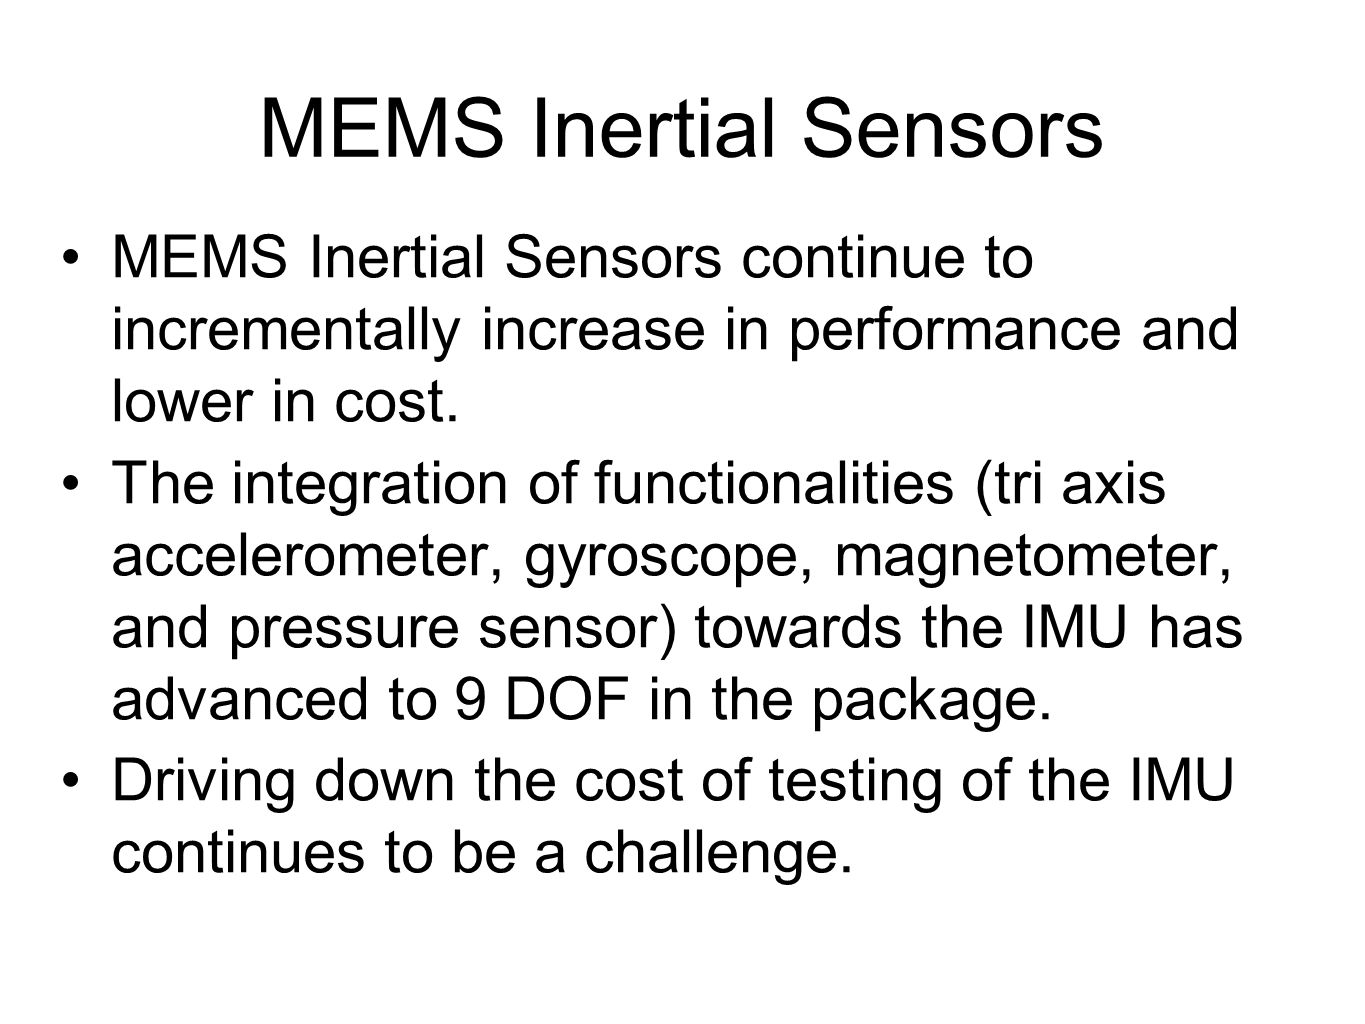 MEMS Inertial Sensors MEMS Inertial Sensors continue to incrementally increase in performance and lower in cost.